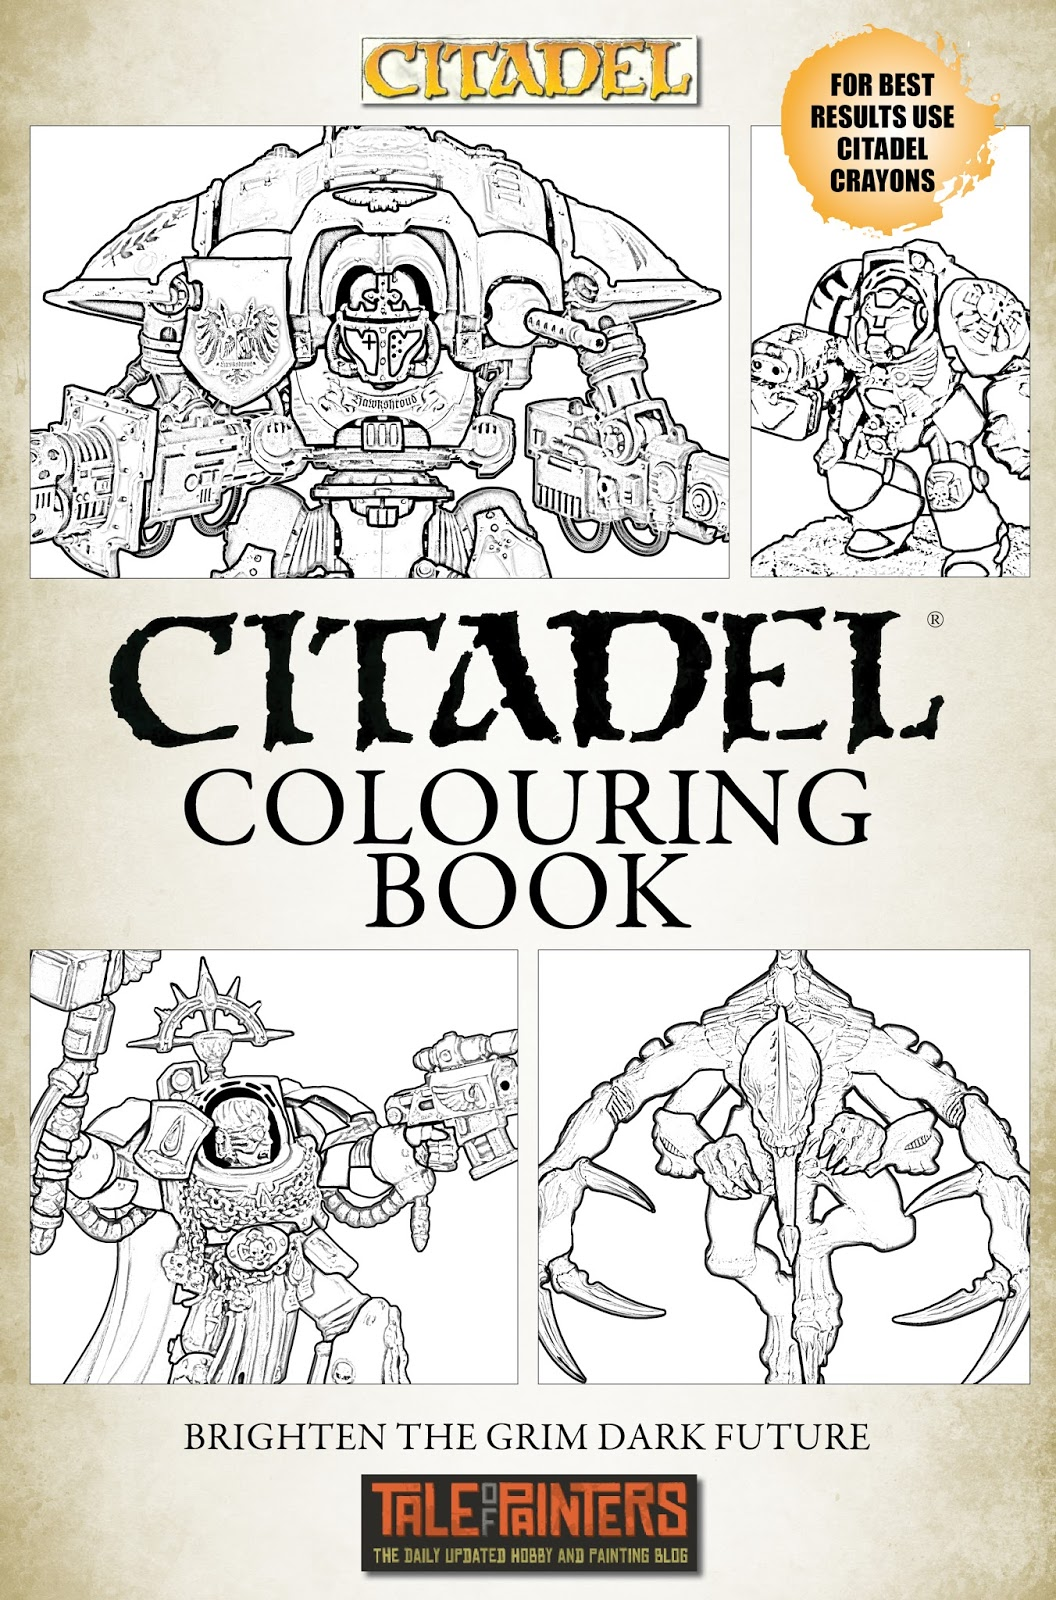 Rumour Citadel Colouring Book Leaked Cover